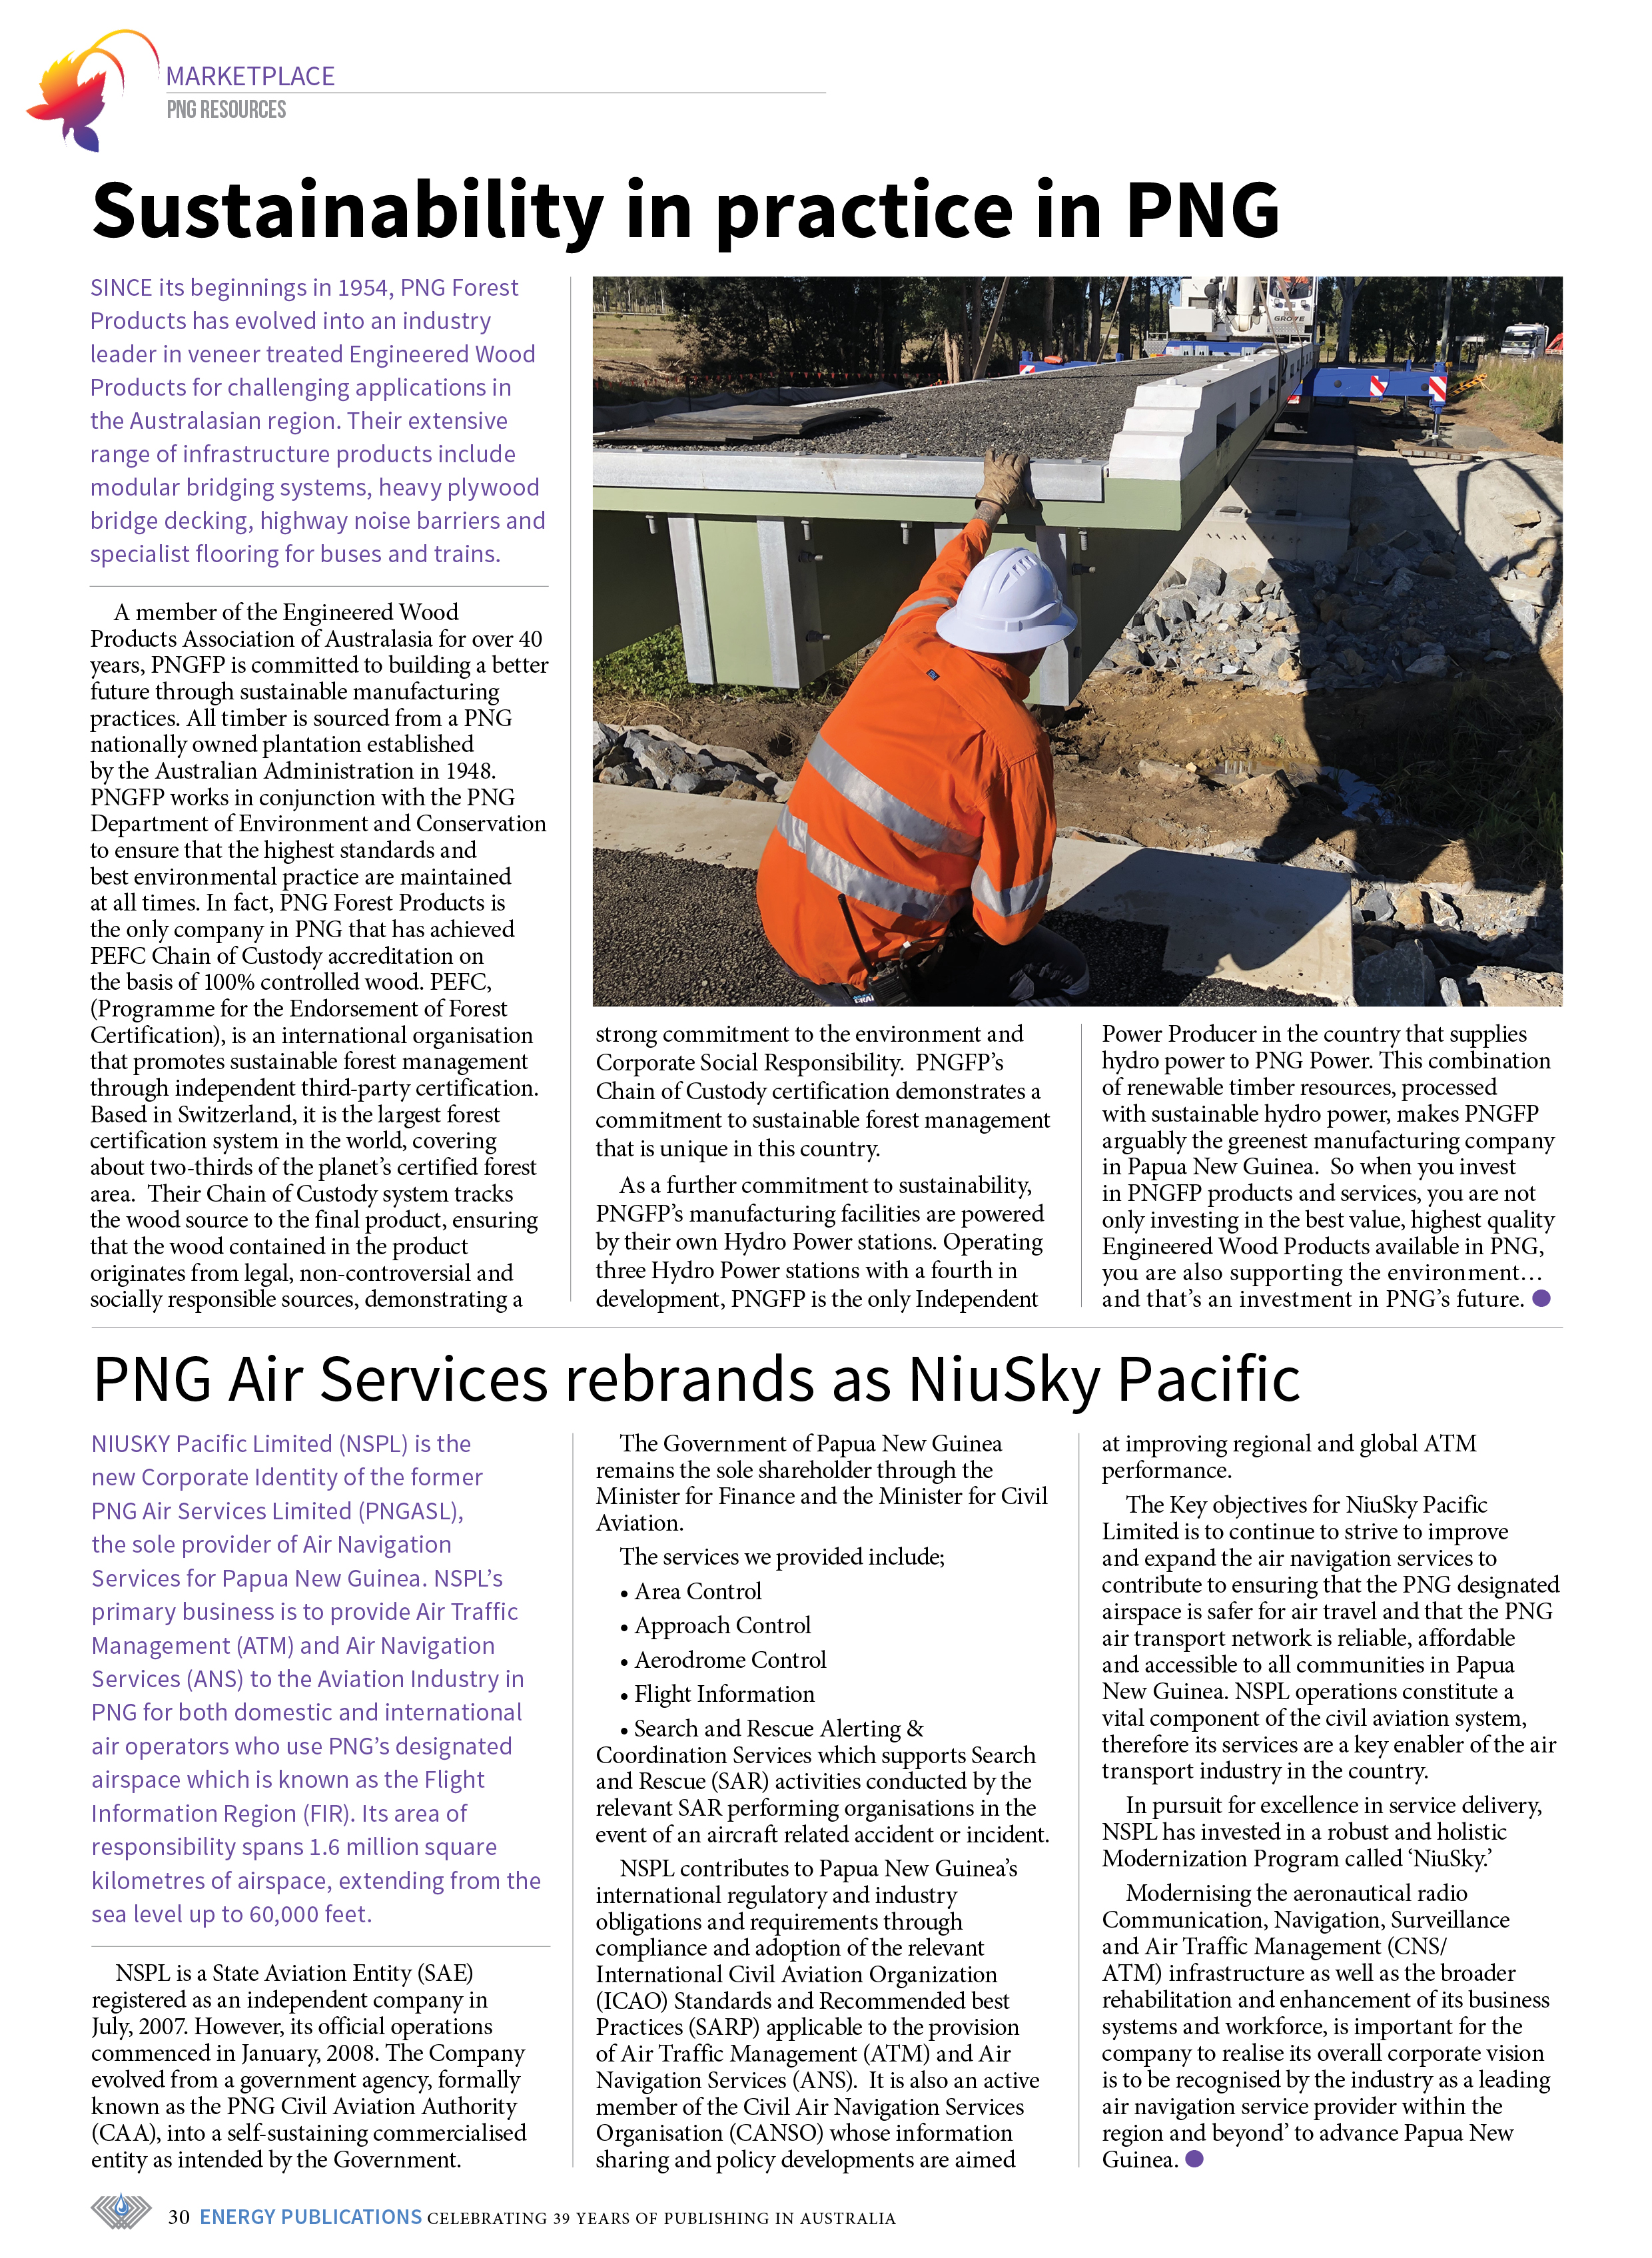 PNG Resources Q1 2021 – Page 32